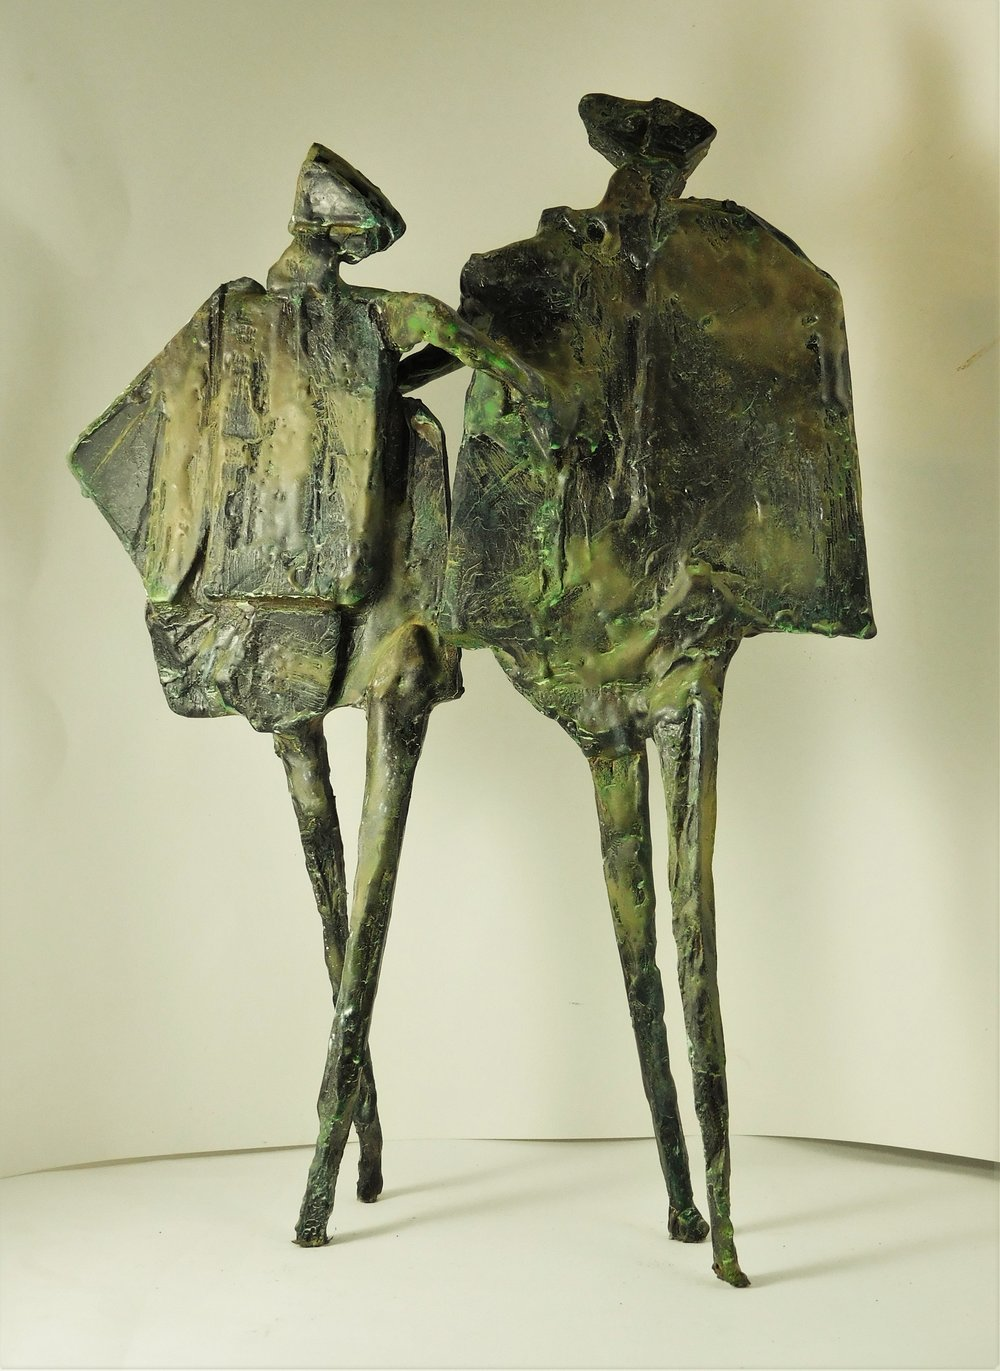 Title: The Dance Size: 31 cm (h) x 23.5 cm (w) Medium: Bronze, edition 5 of 9  Price: £1840